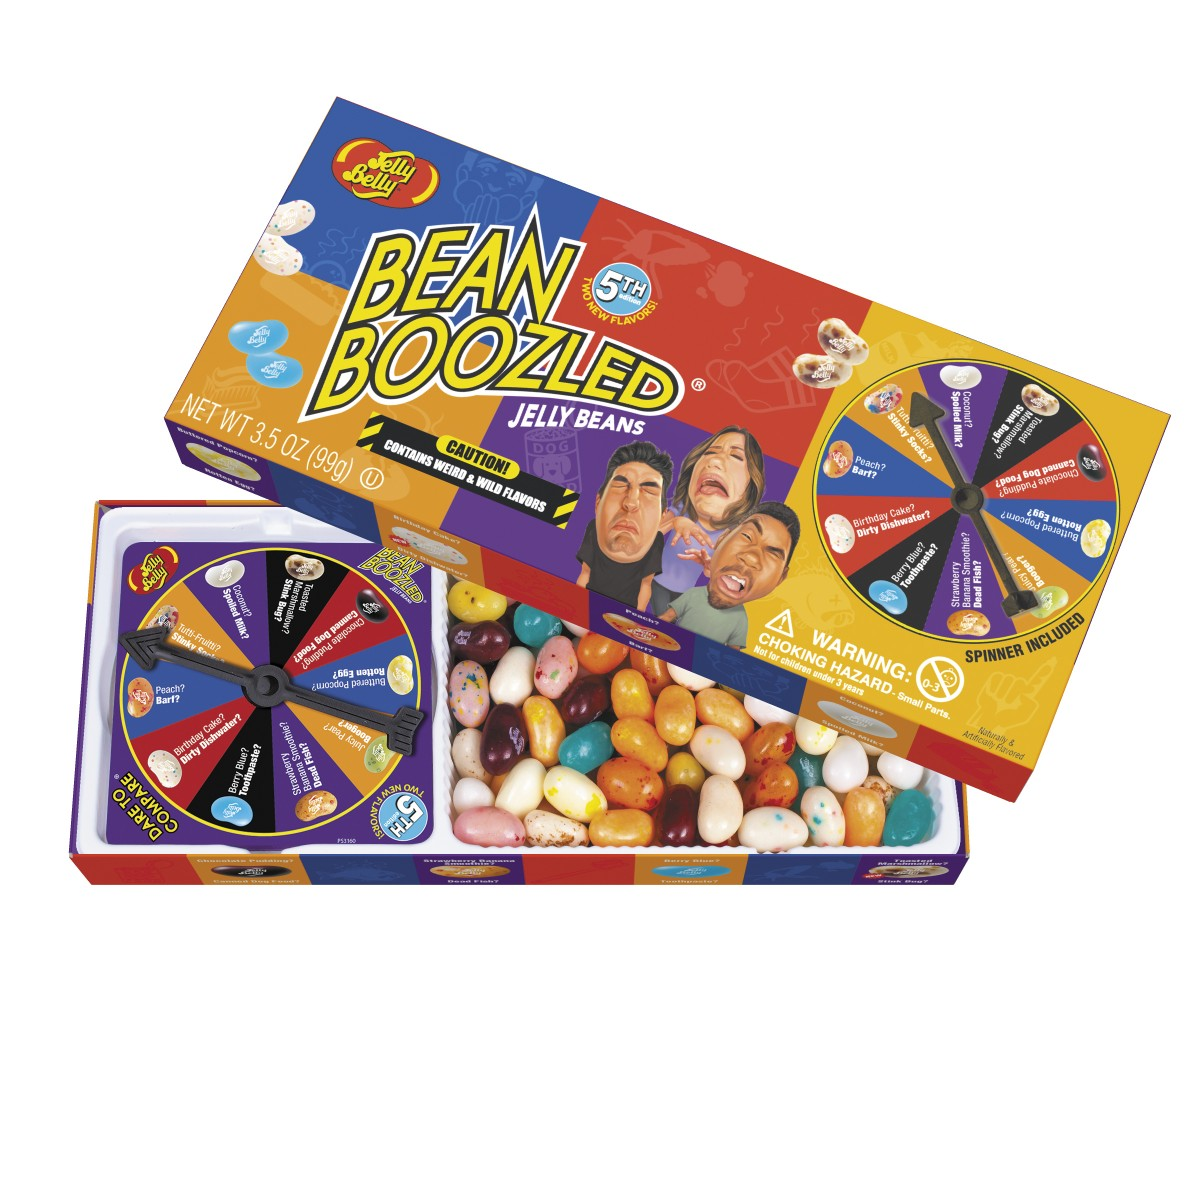 Beanboozled 5th Edition Debuts Features Two Outrageous New Pairings